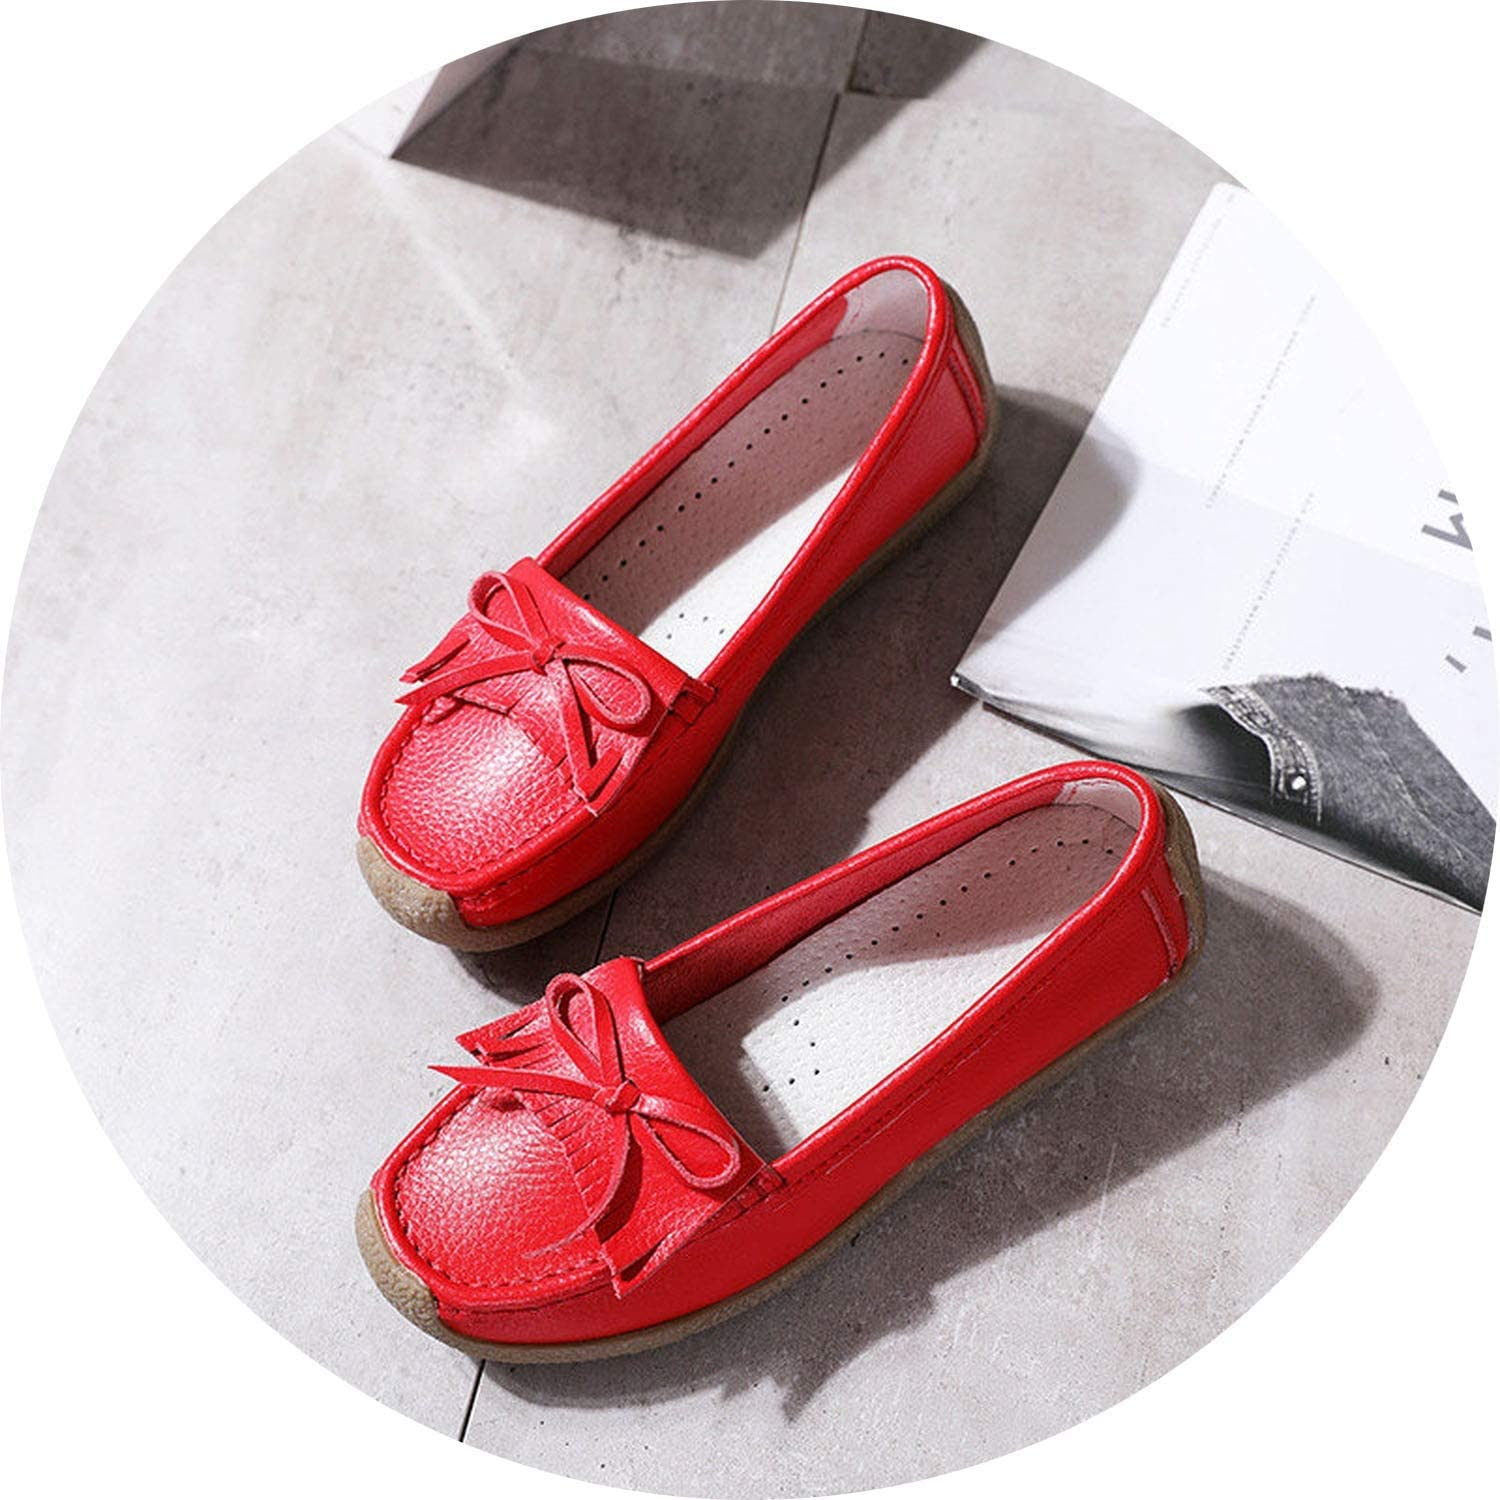 Women Flats Genuine Leather Loafers Woman Slip On Boat shoes Fashion Female Casual Single shoes 3542